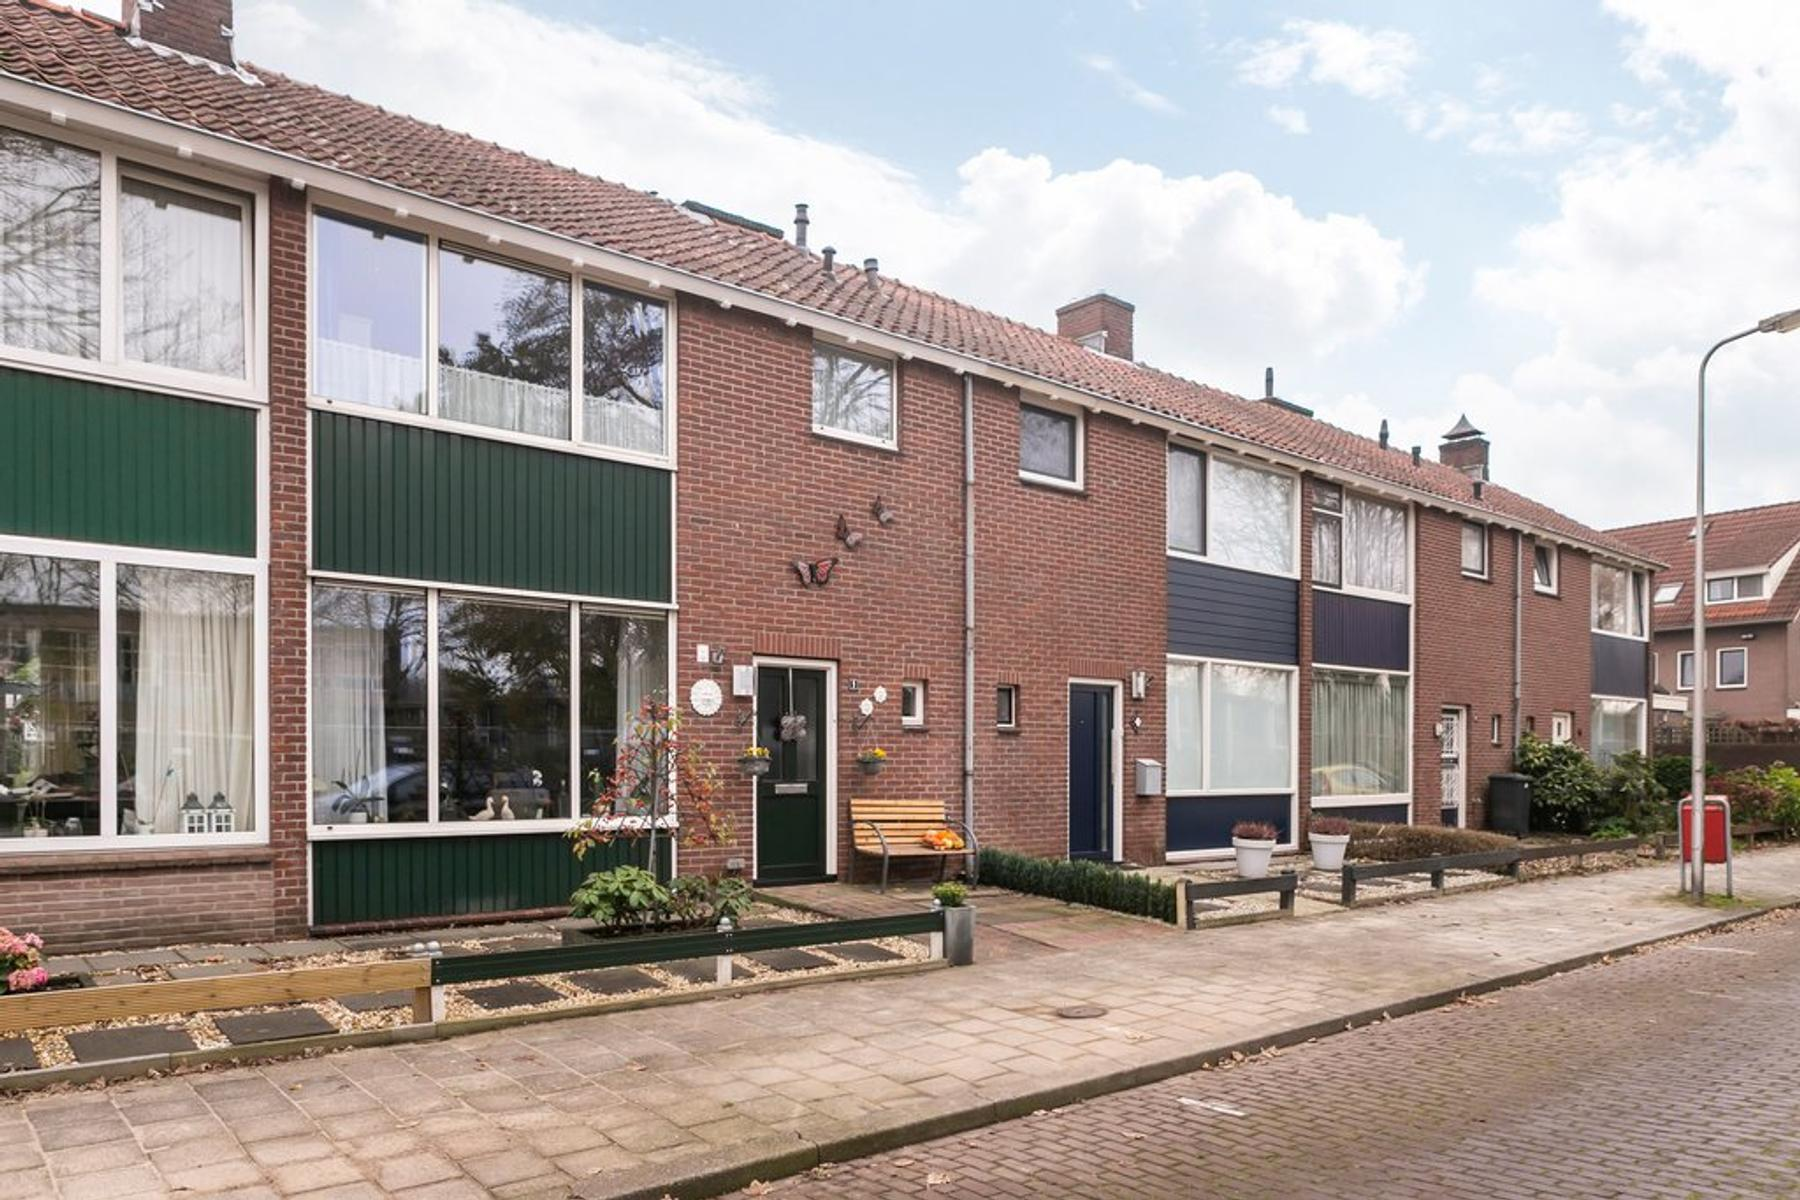 Padangstraat 9 in Hengelo 7556 SP